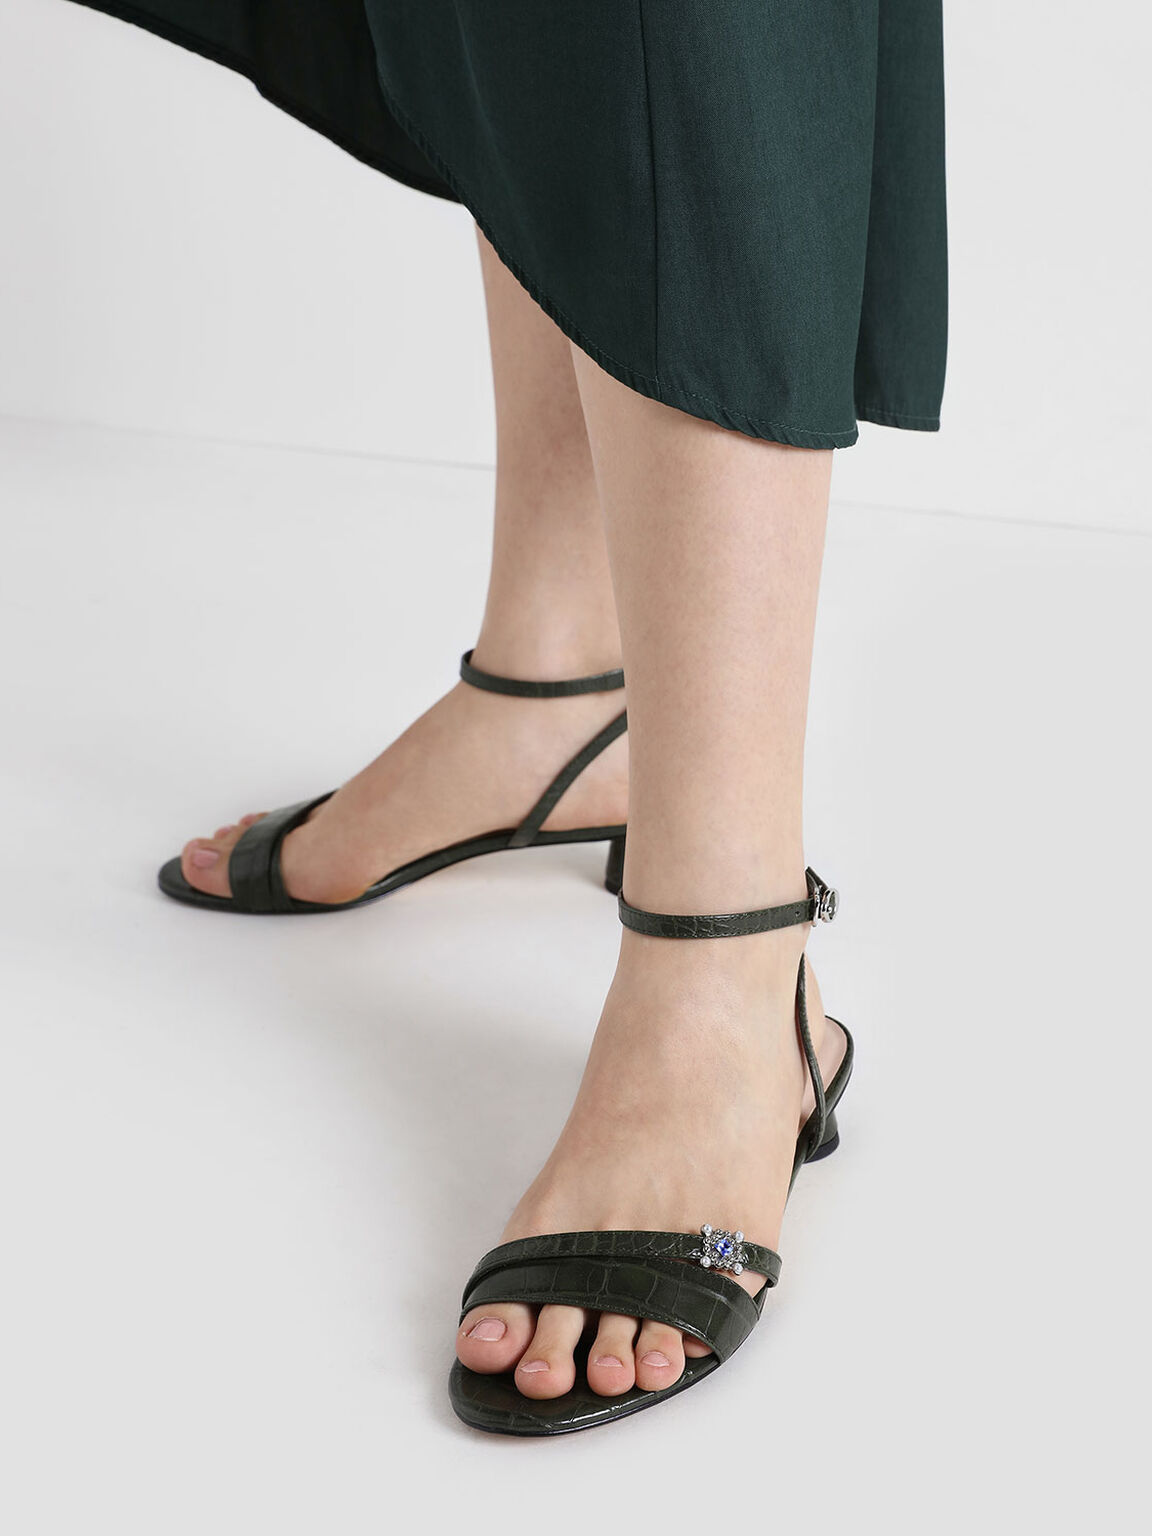 Croc-Effect Gem Embellished Cylindrical Heel Sandals, Green, hi-res